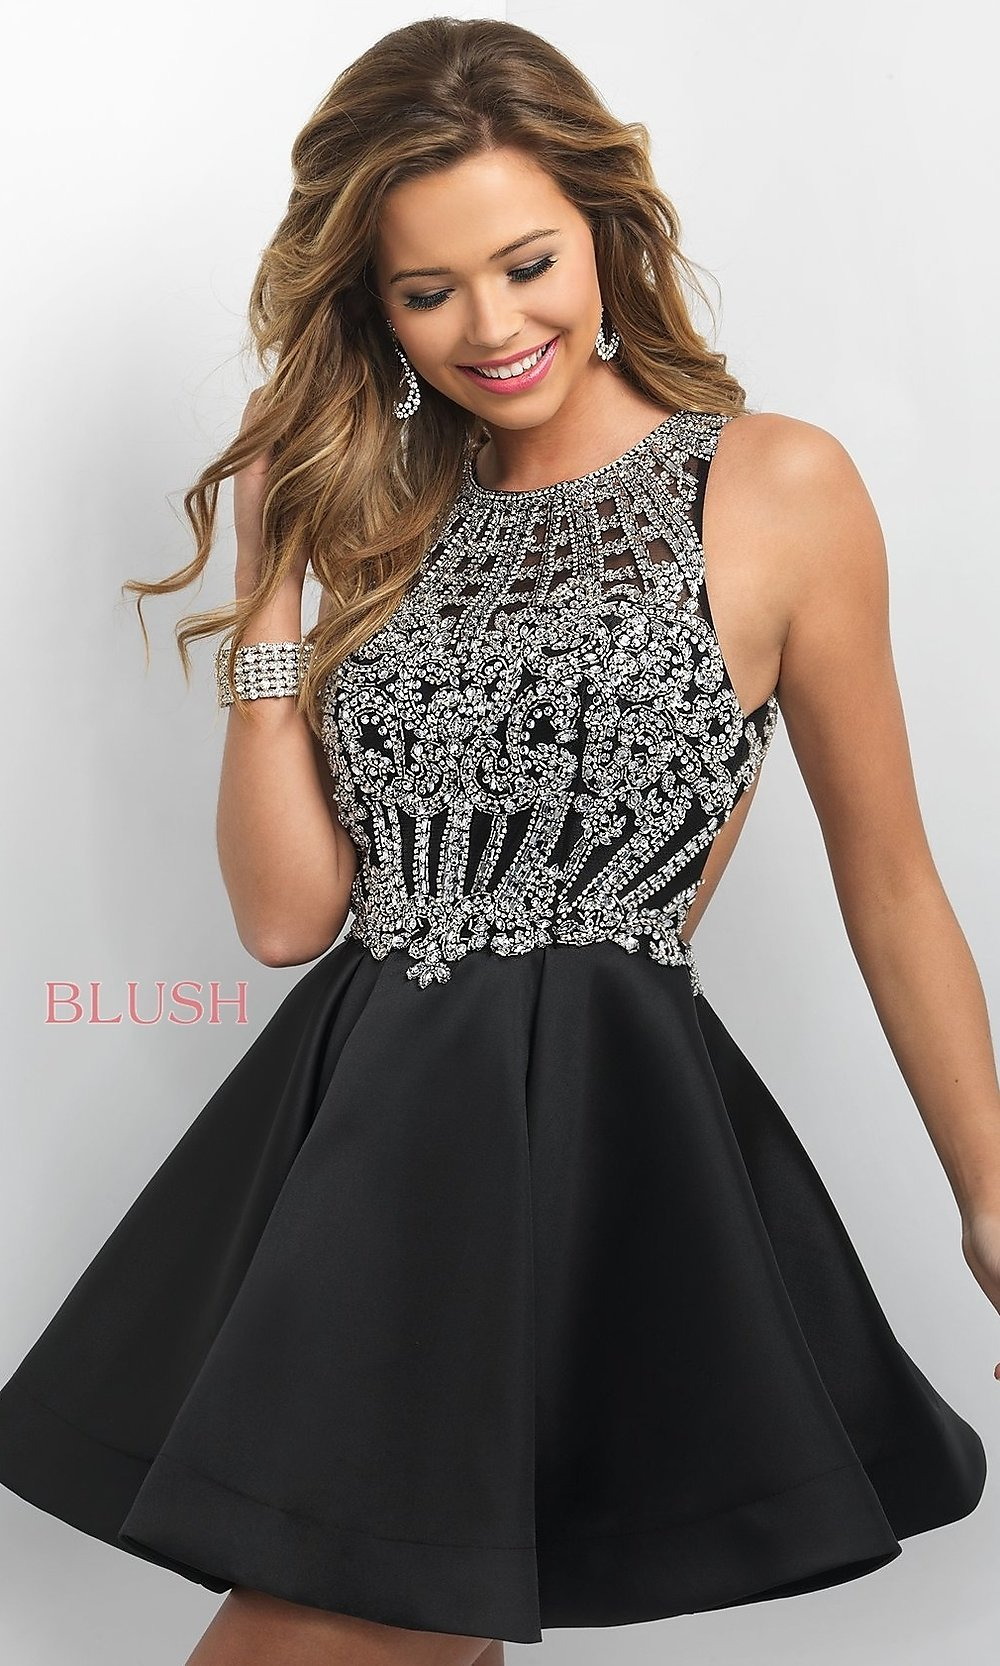 Bar Mitzvah Dresses, Bat Mitzvah Dresses - PromGirl